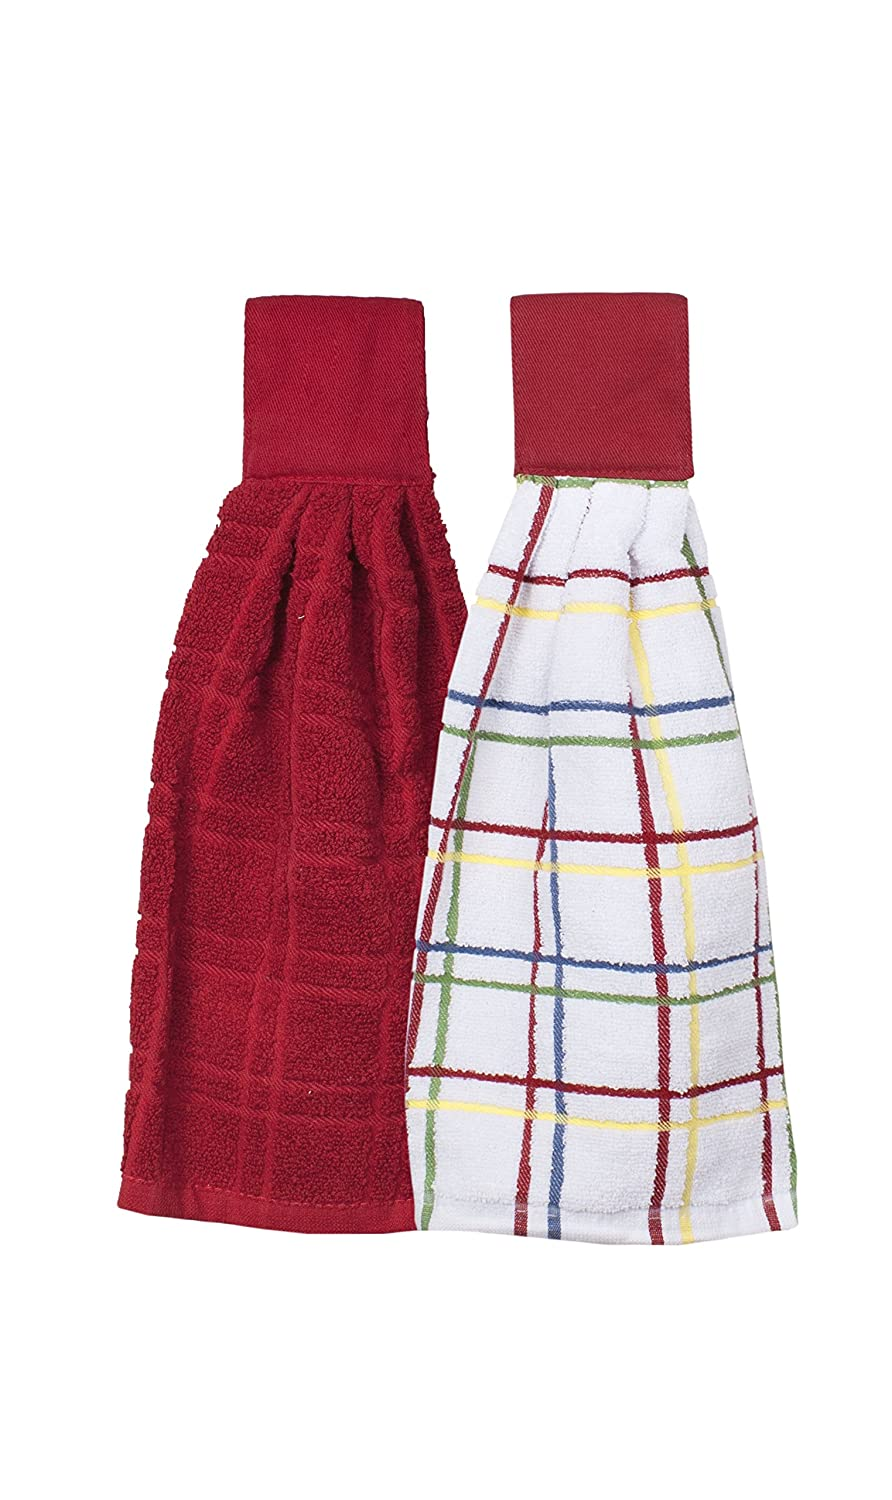 Ritz Kitchen Wears 100% Cotton Checked & Solid Hanging Tie Towels 2 Pack, Paprika Red 2 Piece